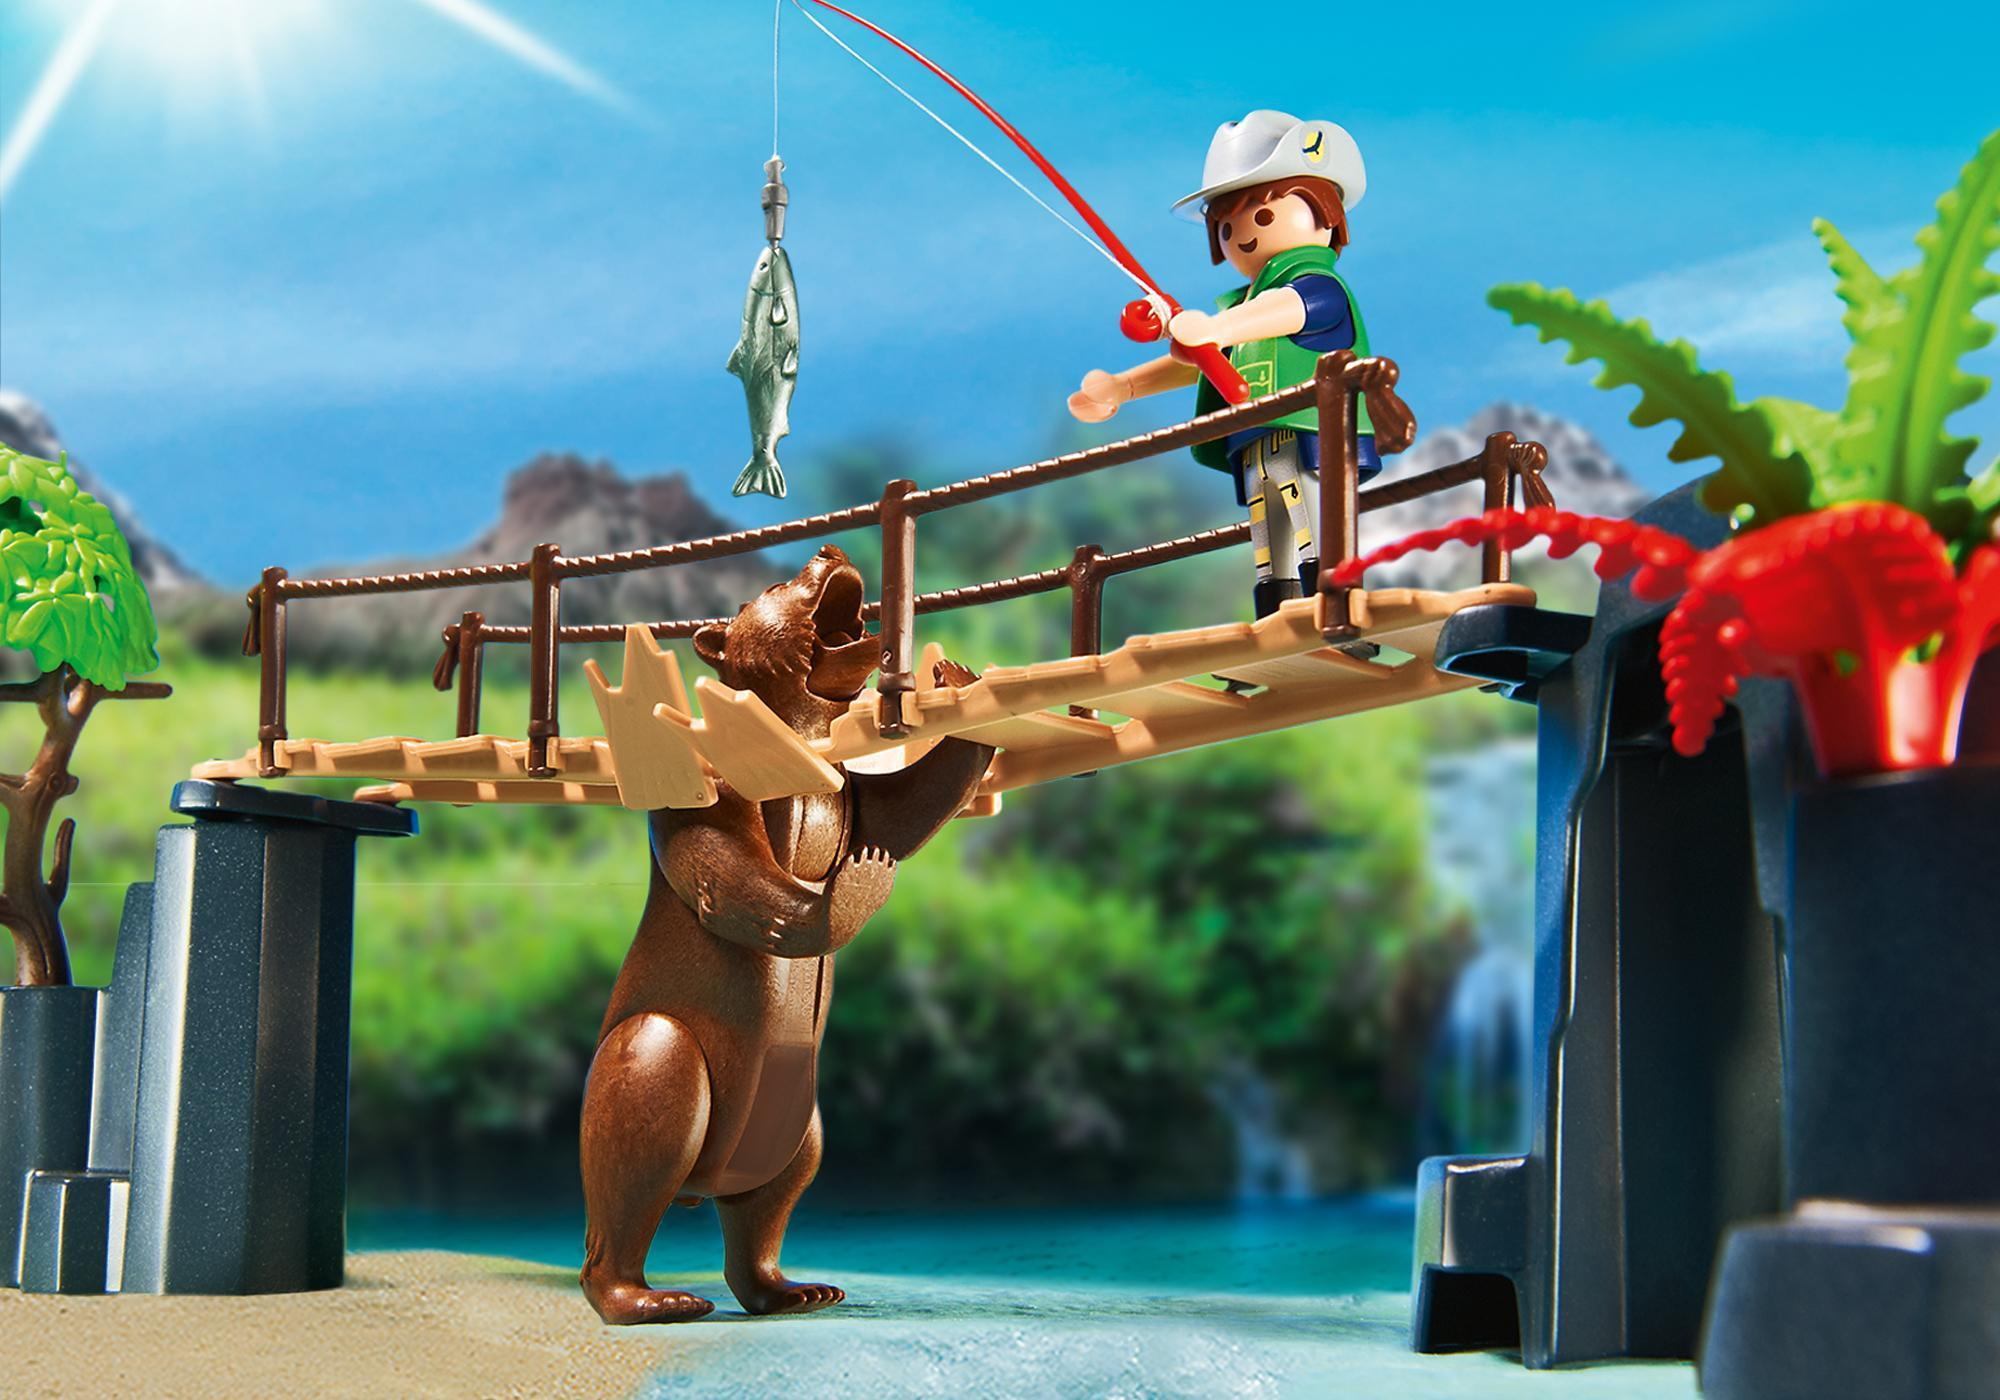 http://media.playmobil.com/i/playmobil/5557_product_extra1